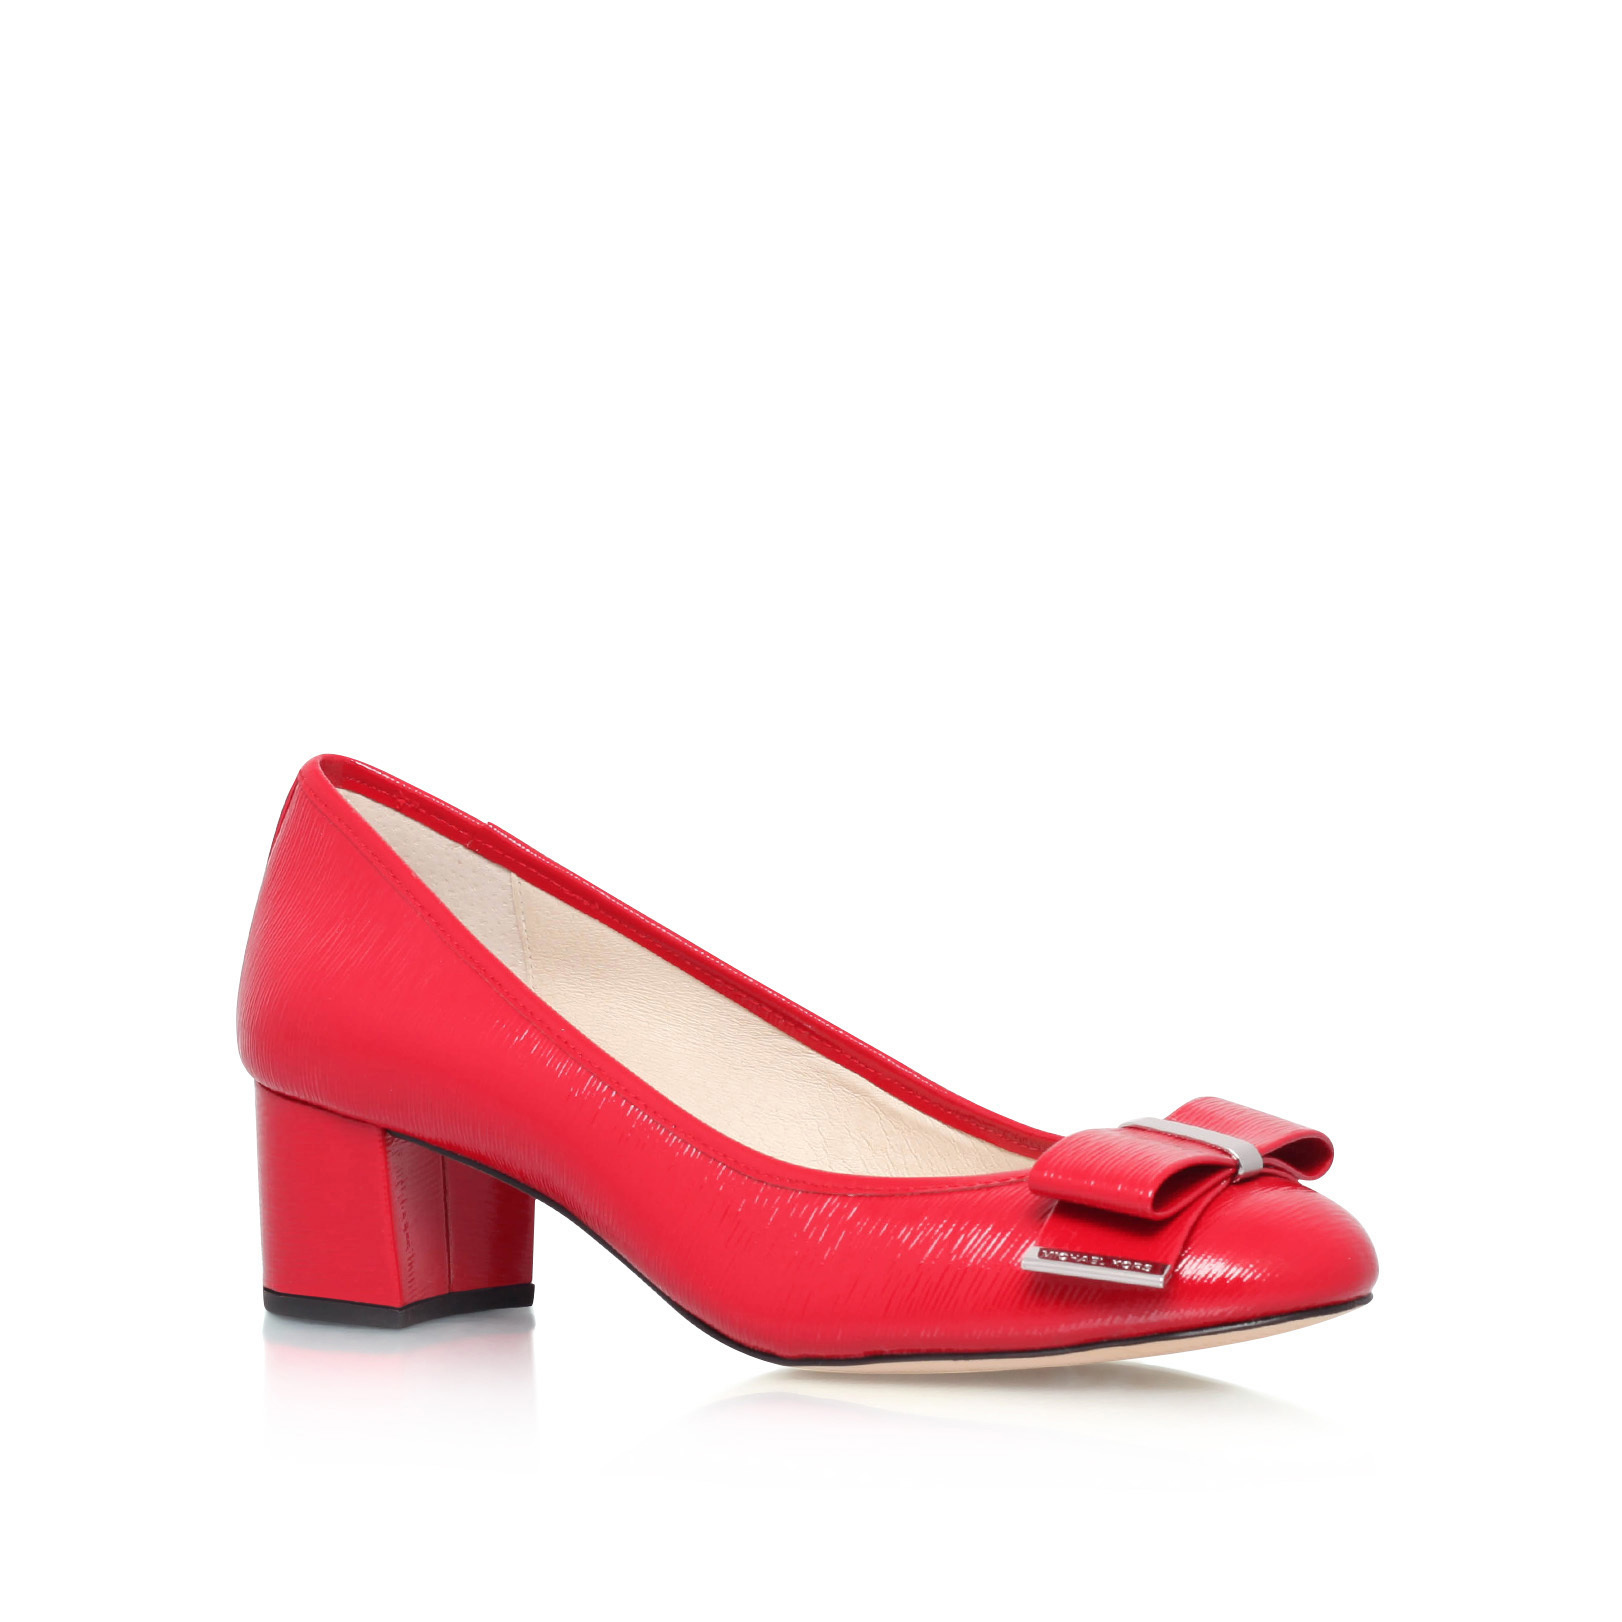 c73d491042ca KIERA MID PUMP Michael Michael Kors Kiera Mid Pump Red Patent Court Shoes  by MICHAEL MICHAEL KORS